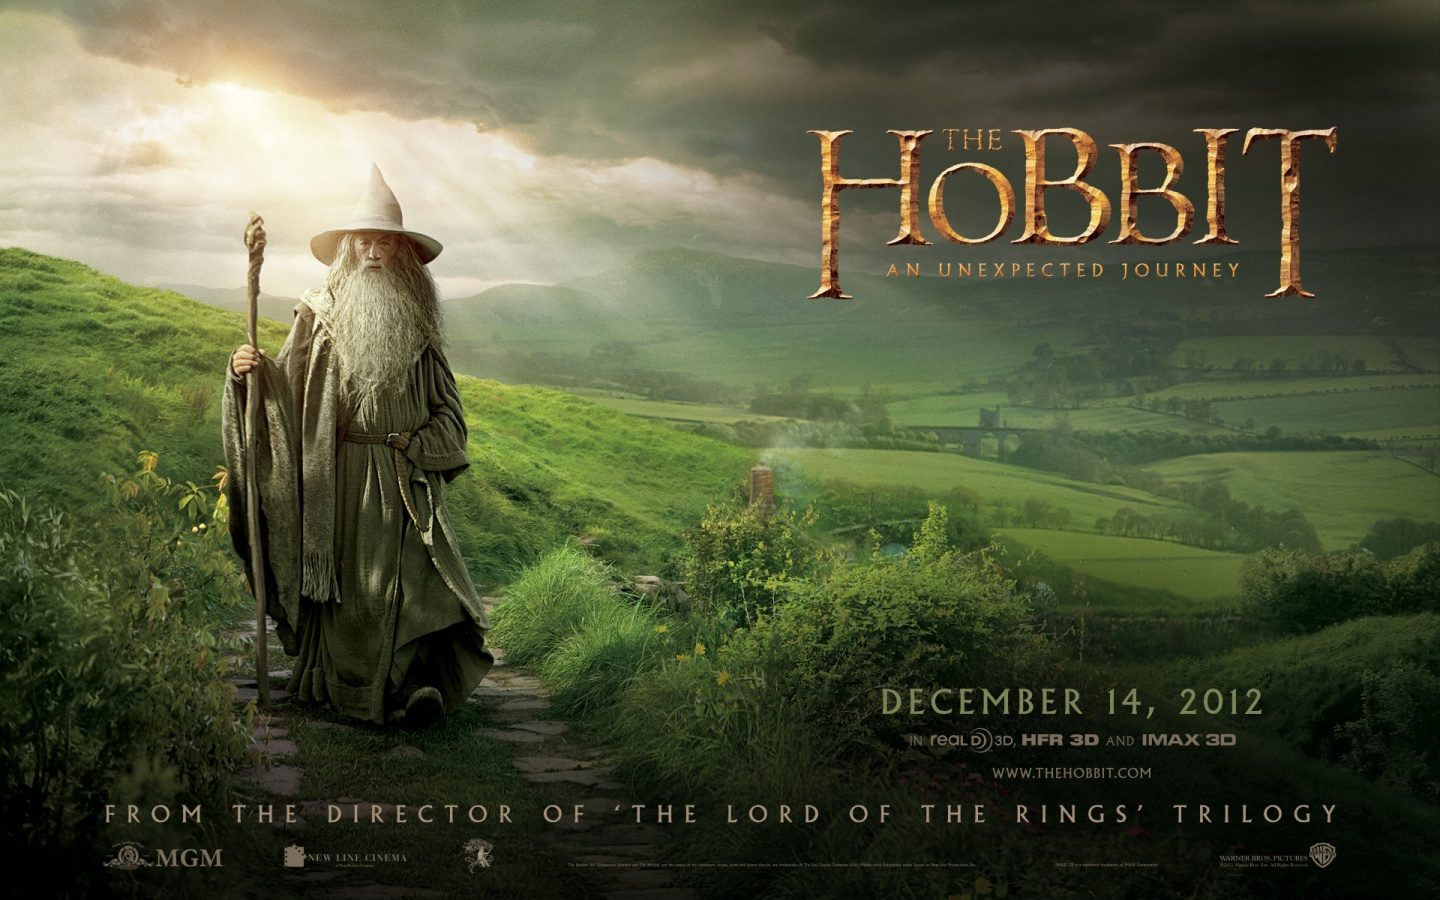 http://3.bp.blogspot.com/-E5v78_USi-M/ULI9lgf5ljI/AAAAAAAABEk/QZL_pO0VNQ0/s1600/the_hobbit_movie-1440x900.jpg